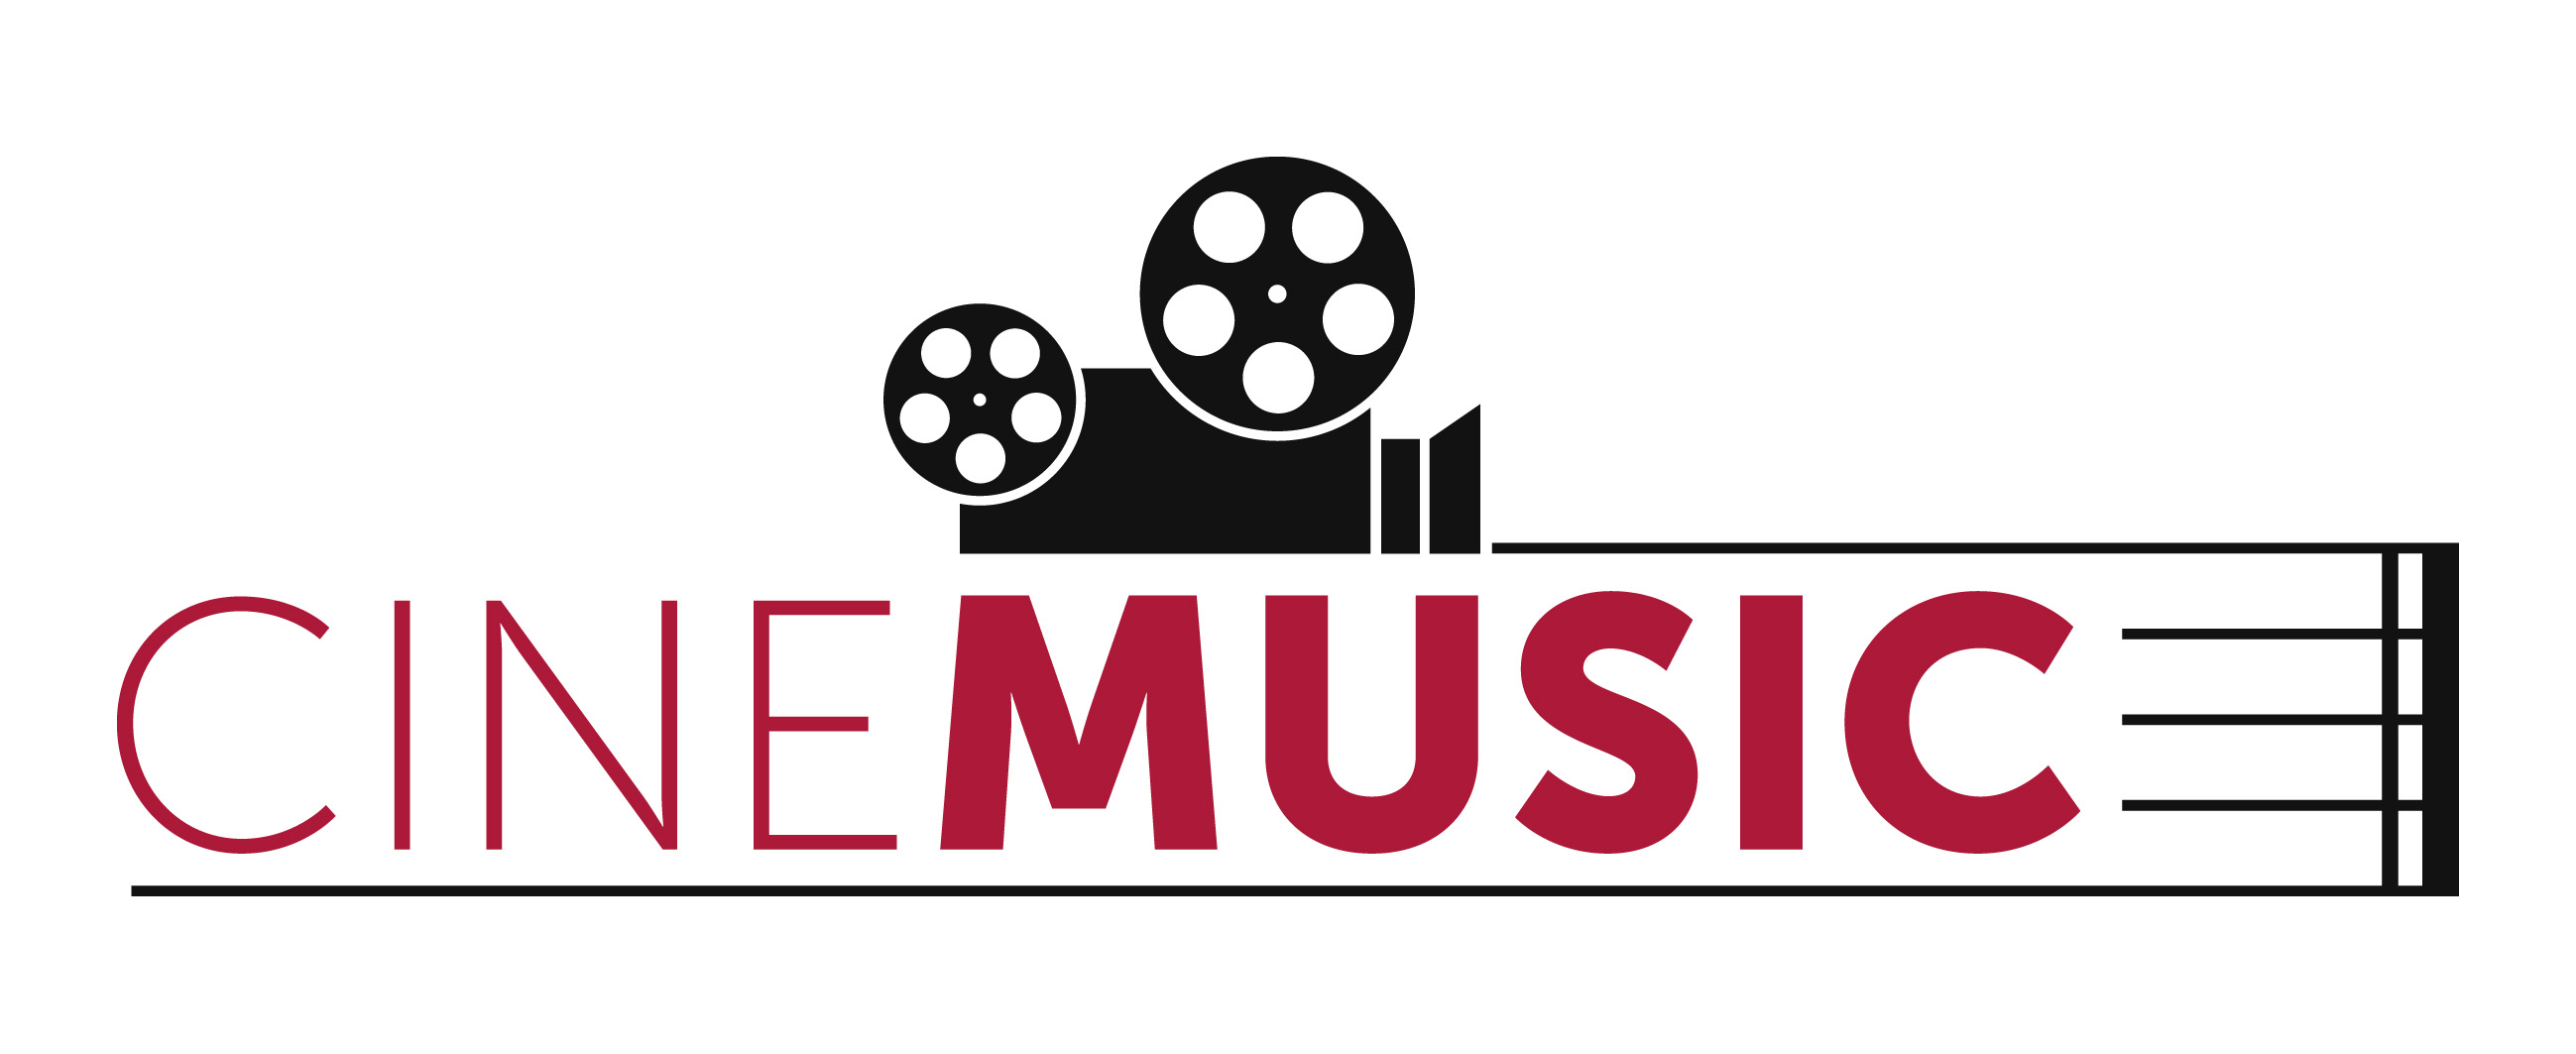 Logo Cinemusic